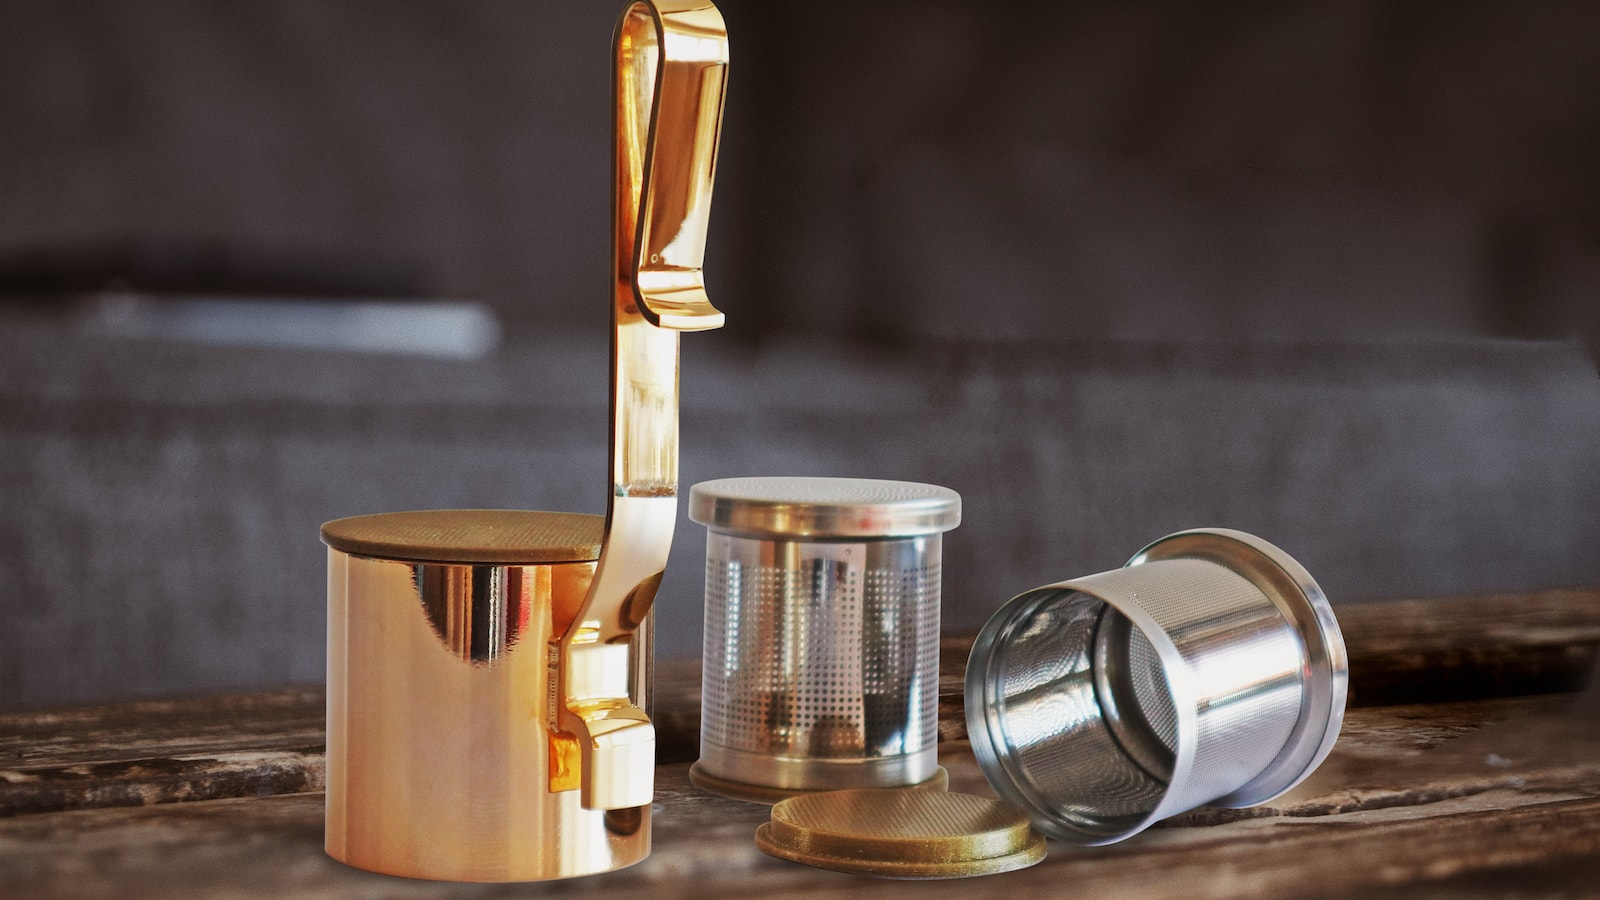 infusinGo tea and coffee brewer is easy to use anywhere and controls your tea's strength